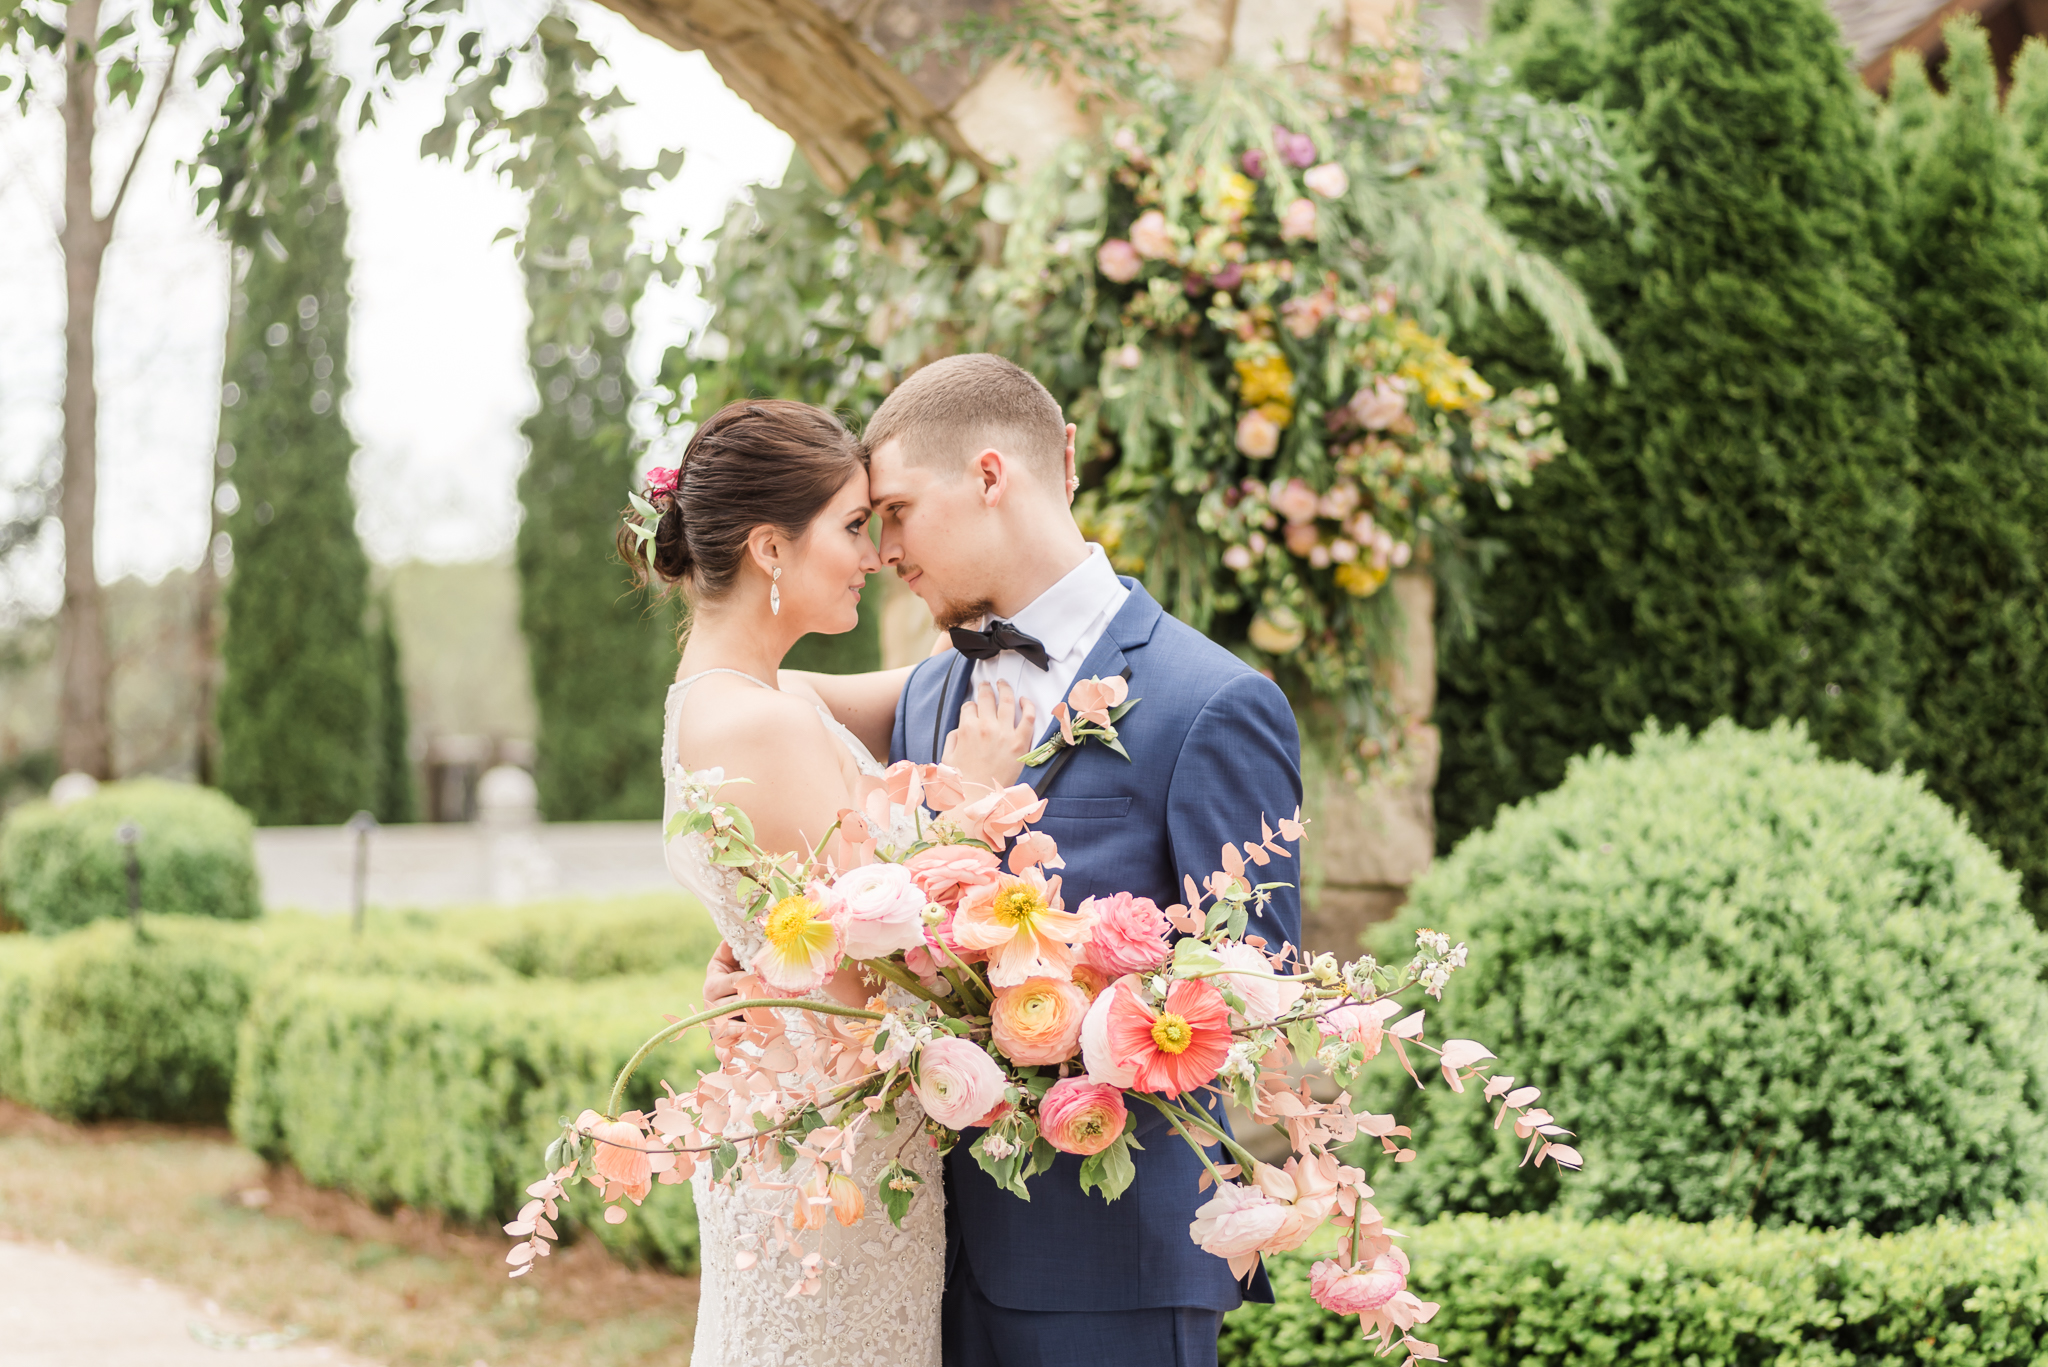 The Best Light and Airy Indianapolis Wedding Photographers-2.jpg